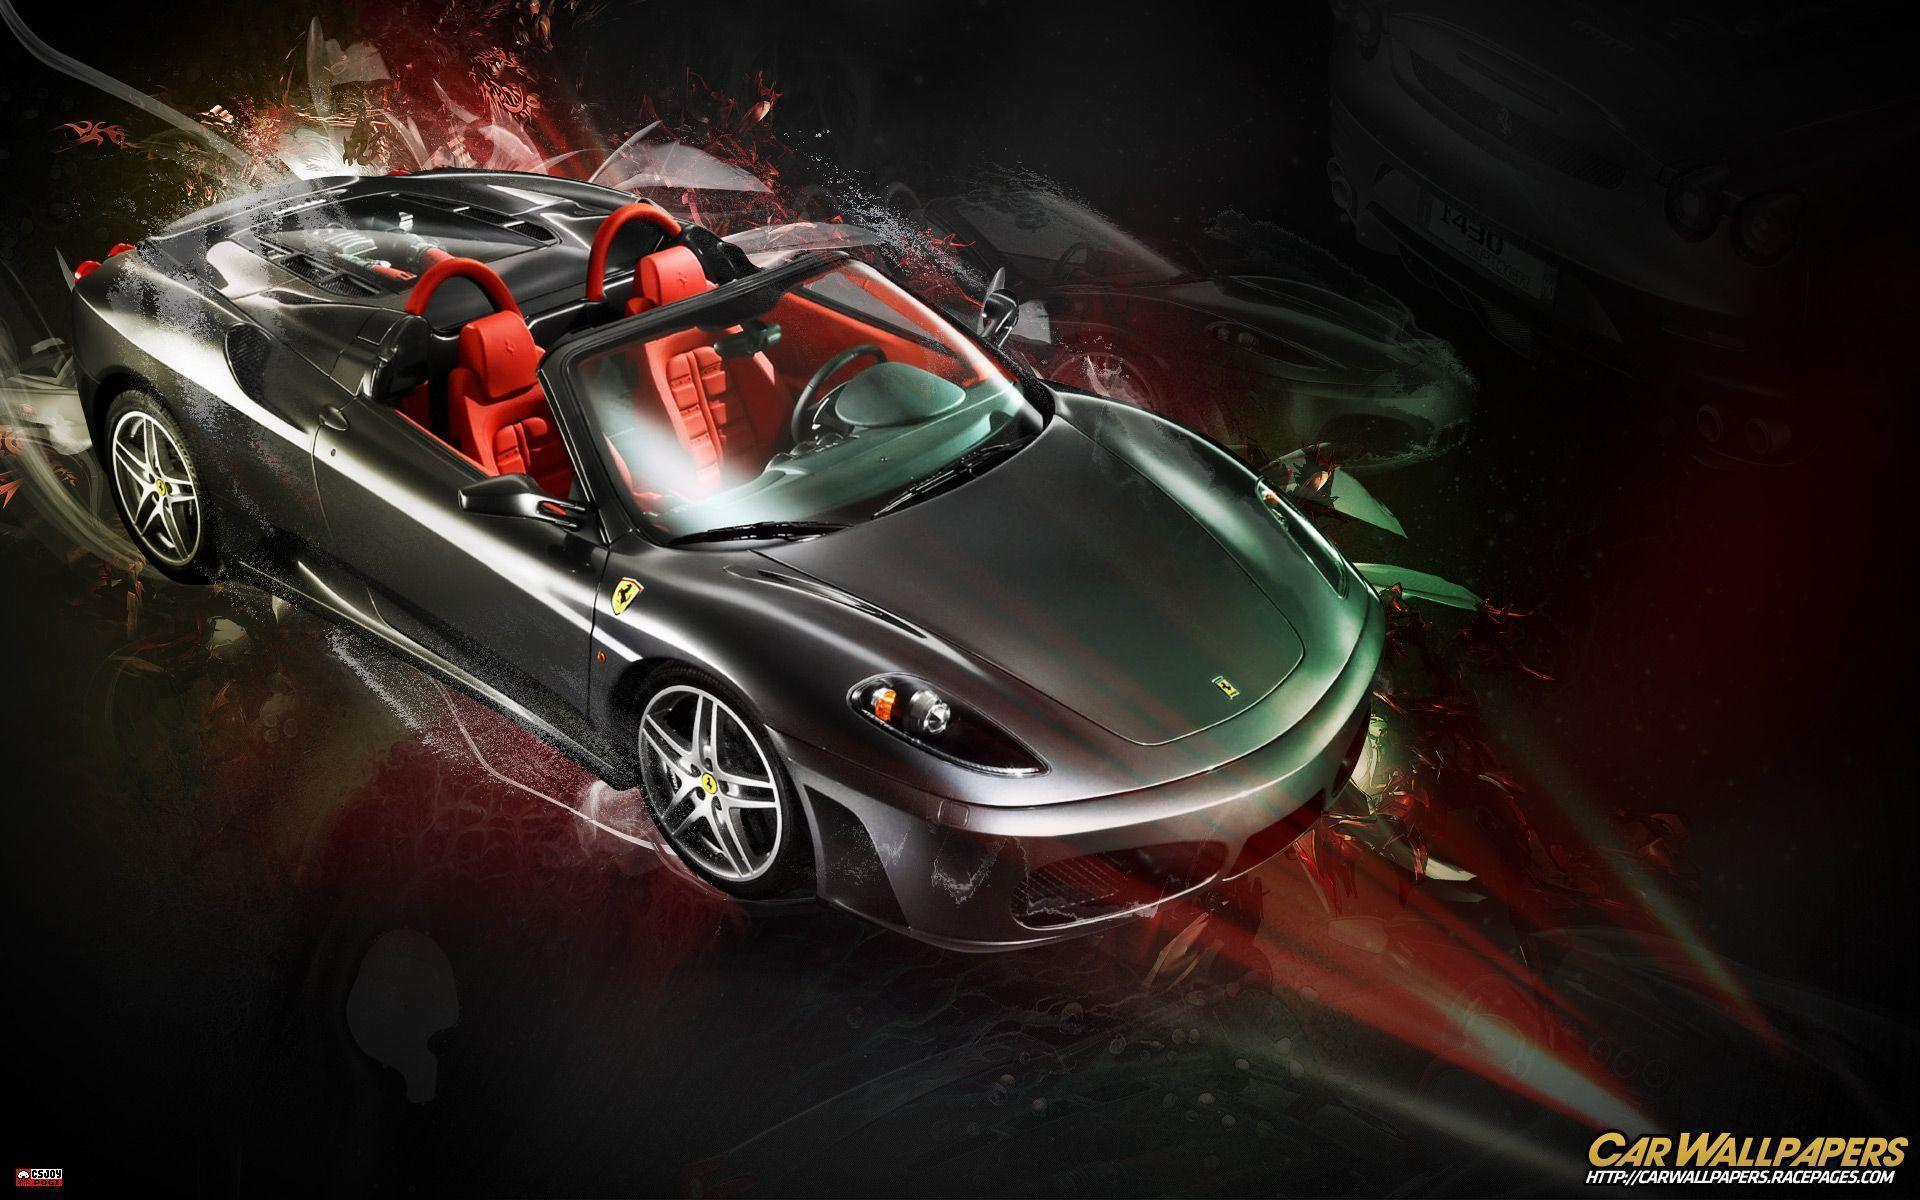 Concept Ferrari Wallpapers Cars Full Hd Desktop Backgrounds Free